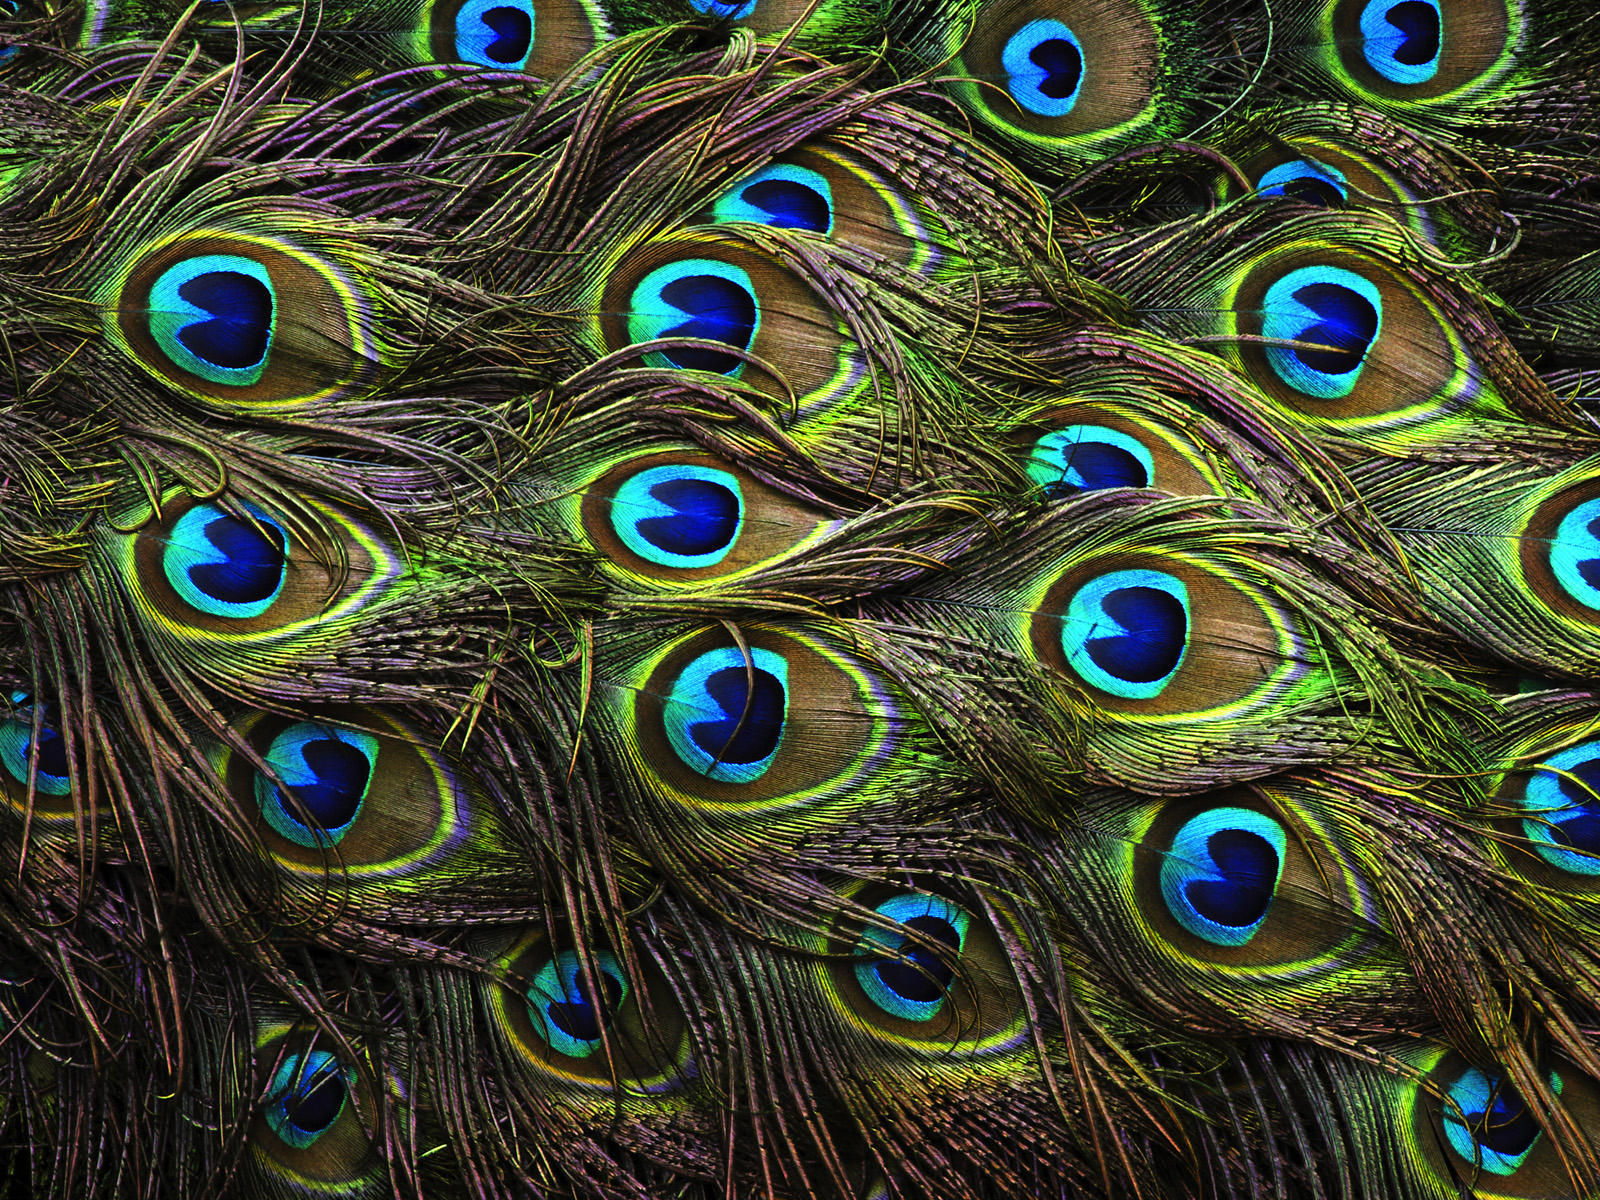 Beautiful peacock feathers flickr photo sharing - Beautiful peacock feather ...